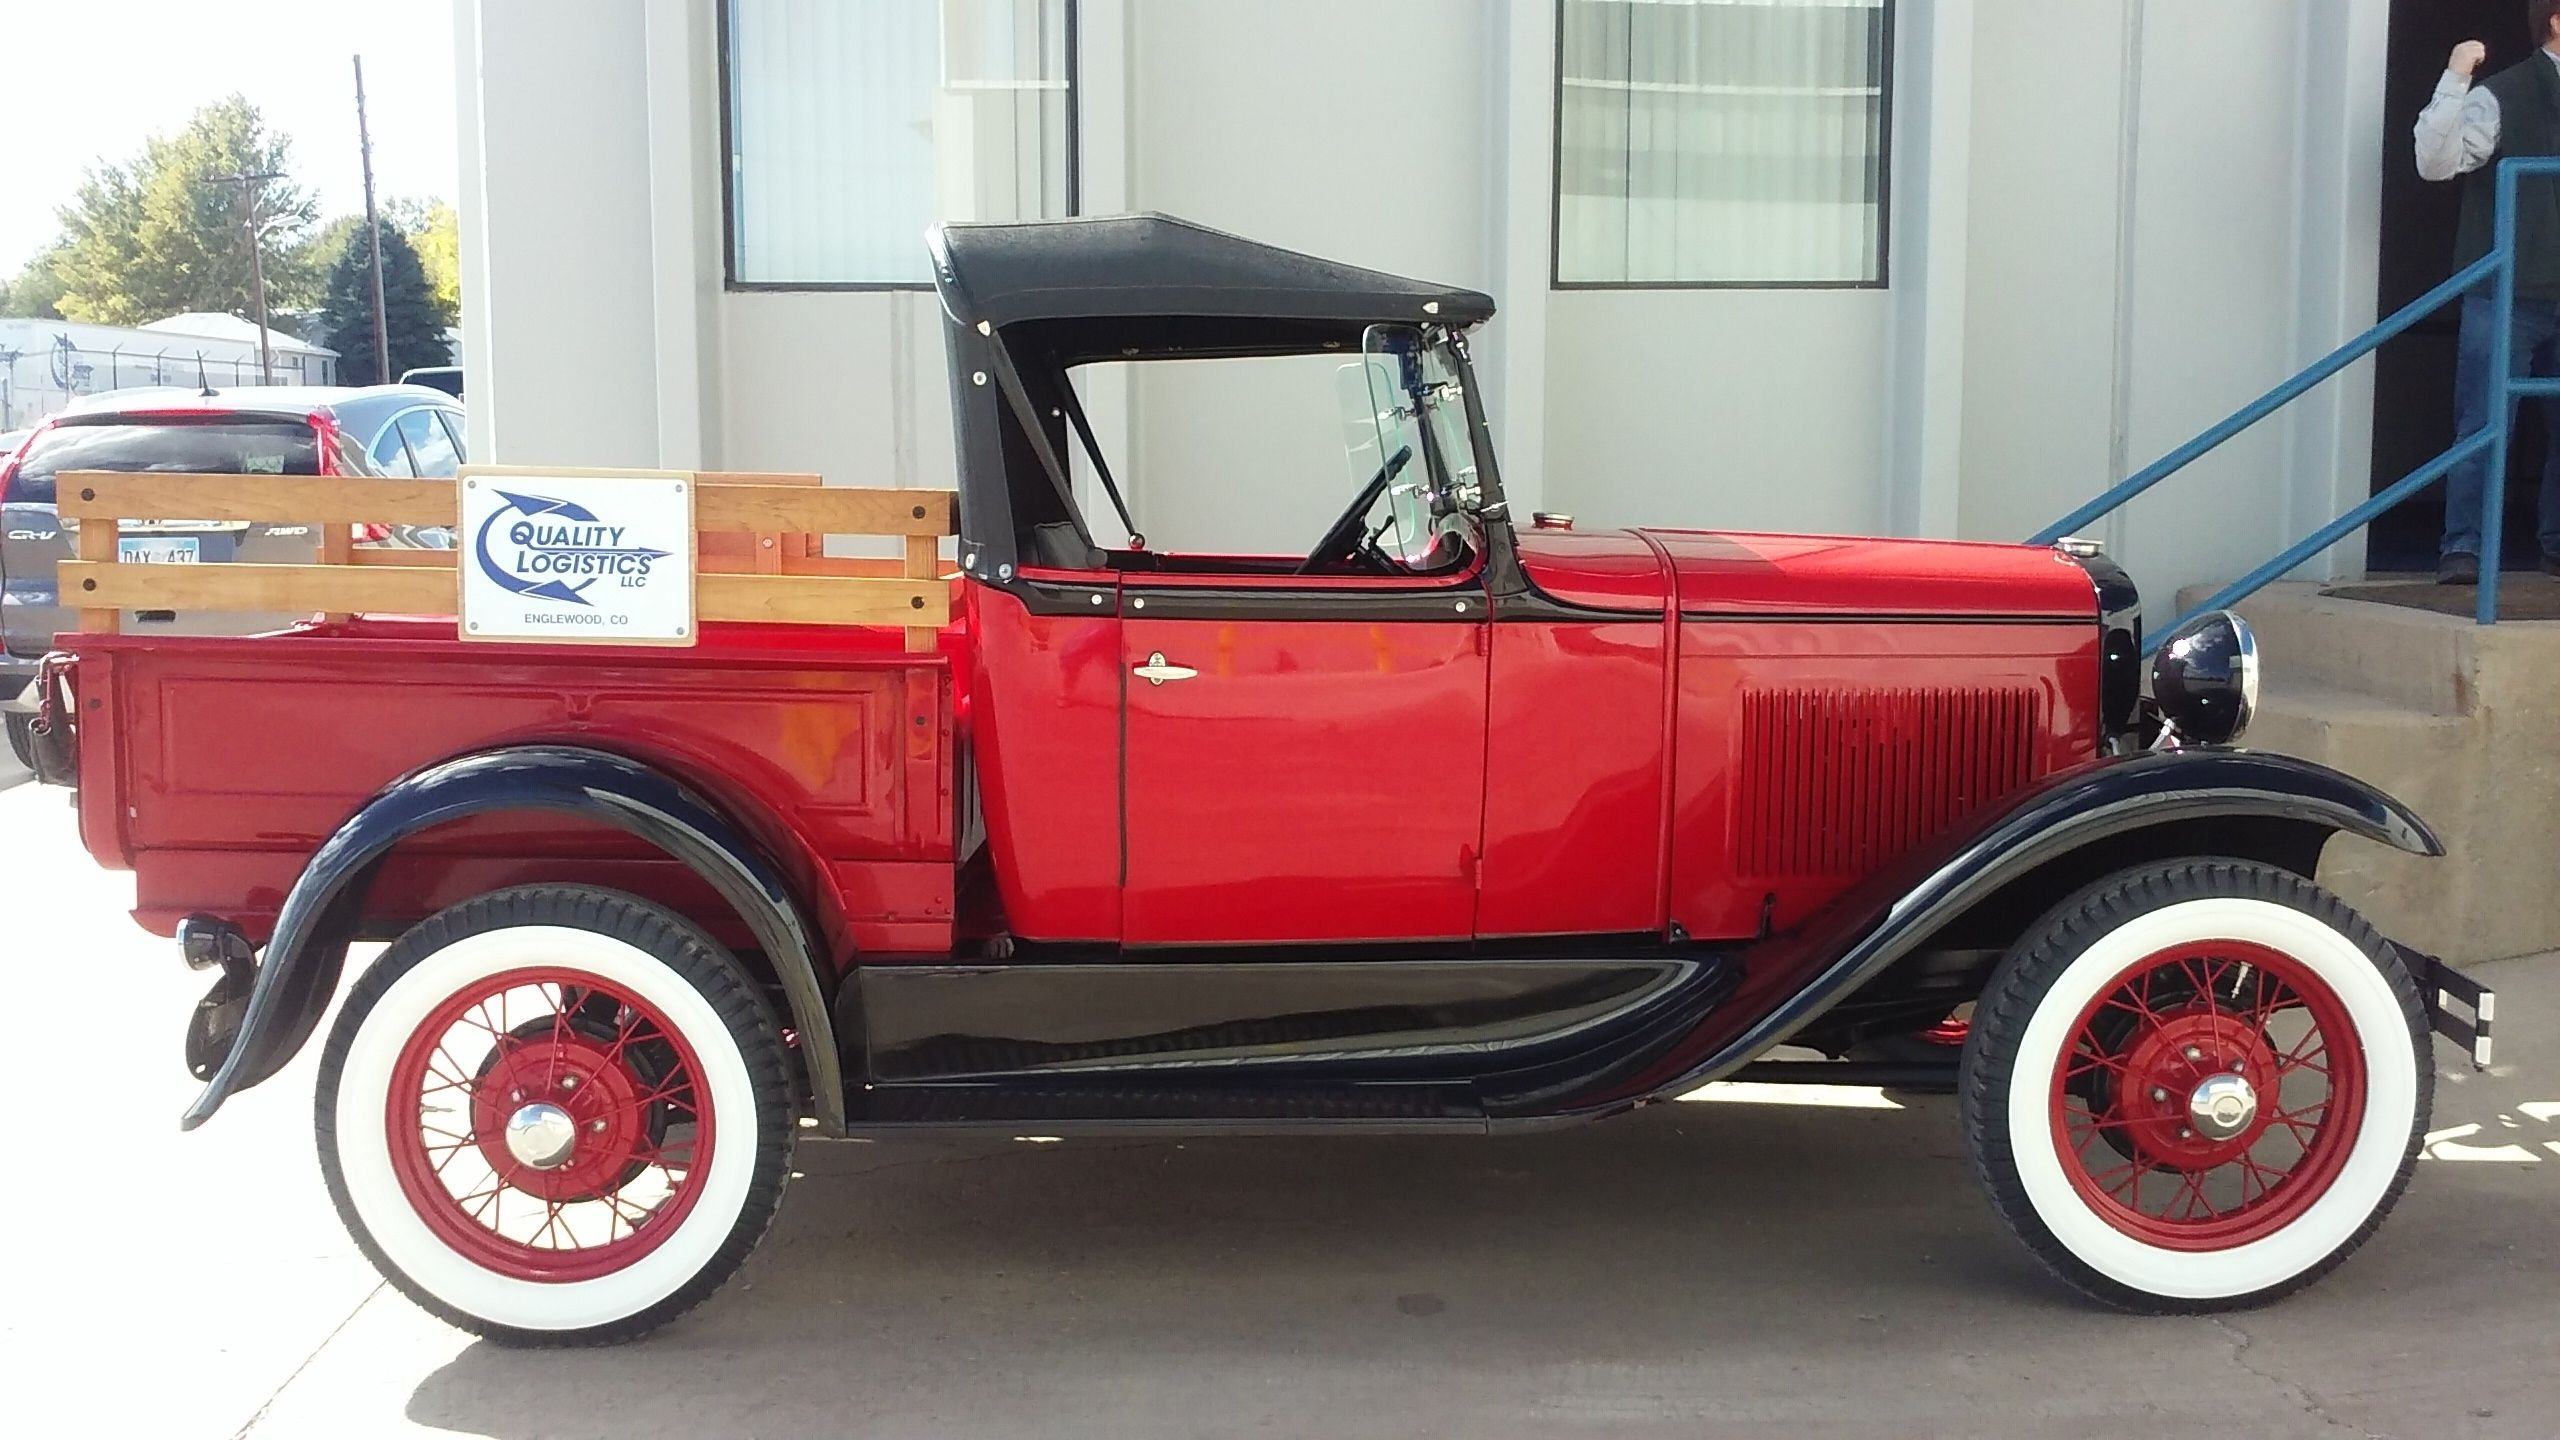 October 2016 winner (Sandi L) - Quality Logistics 1931 Model A parked at our terminal